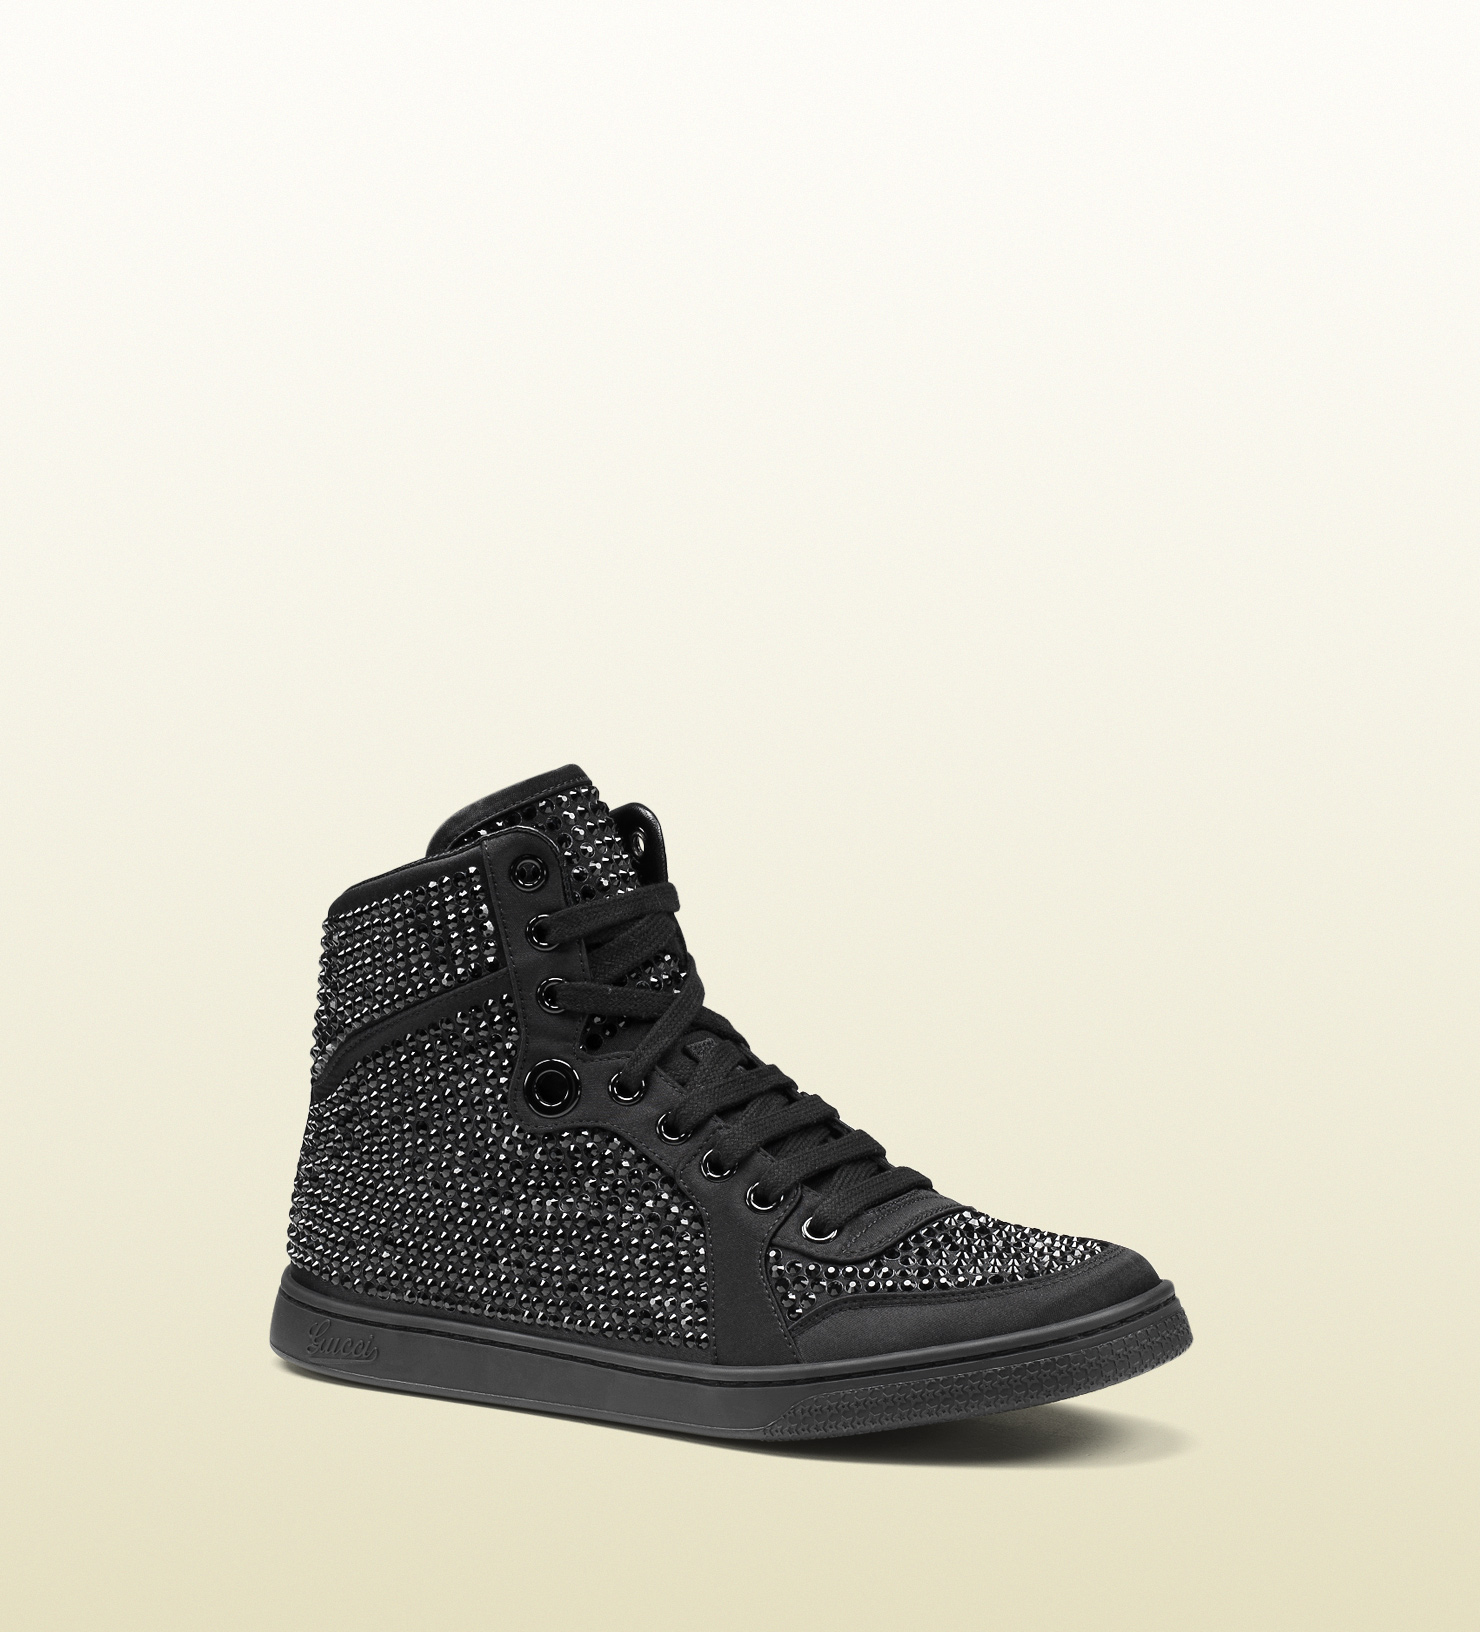 ceaf33b4d13 Lyst - Gucci Coda Satin Effect Fabric High-top Sneaker in Black for Men